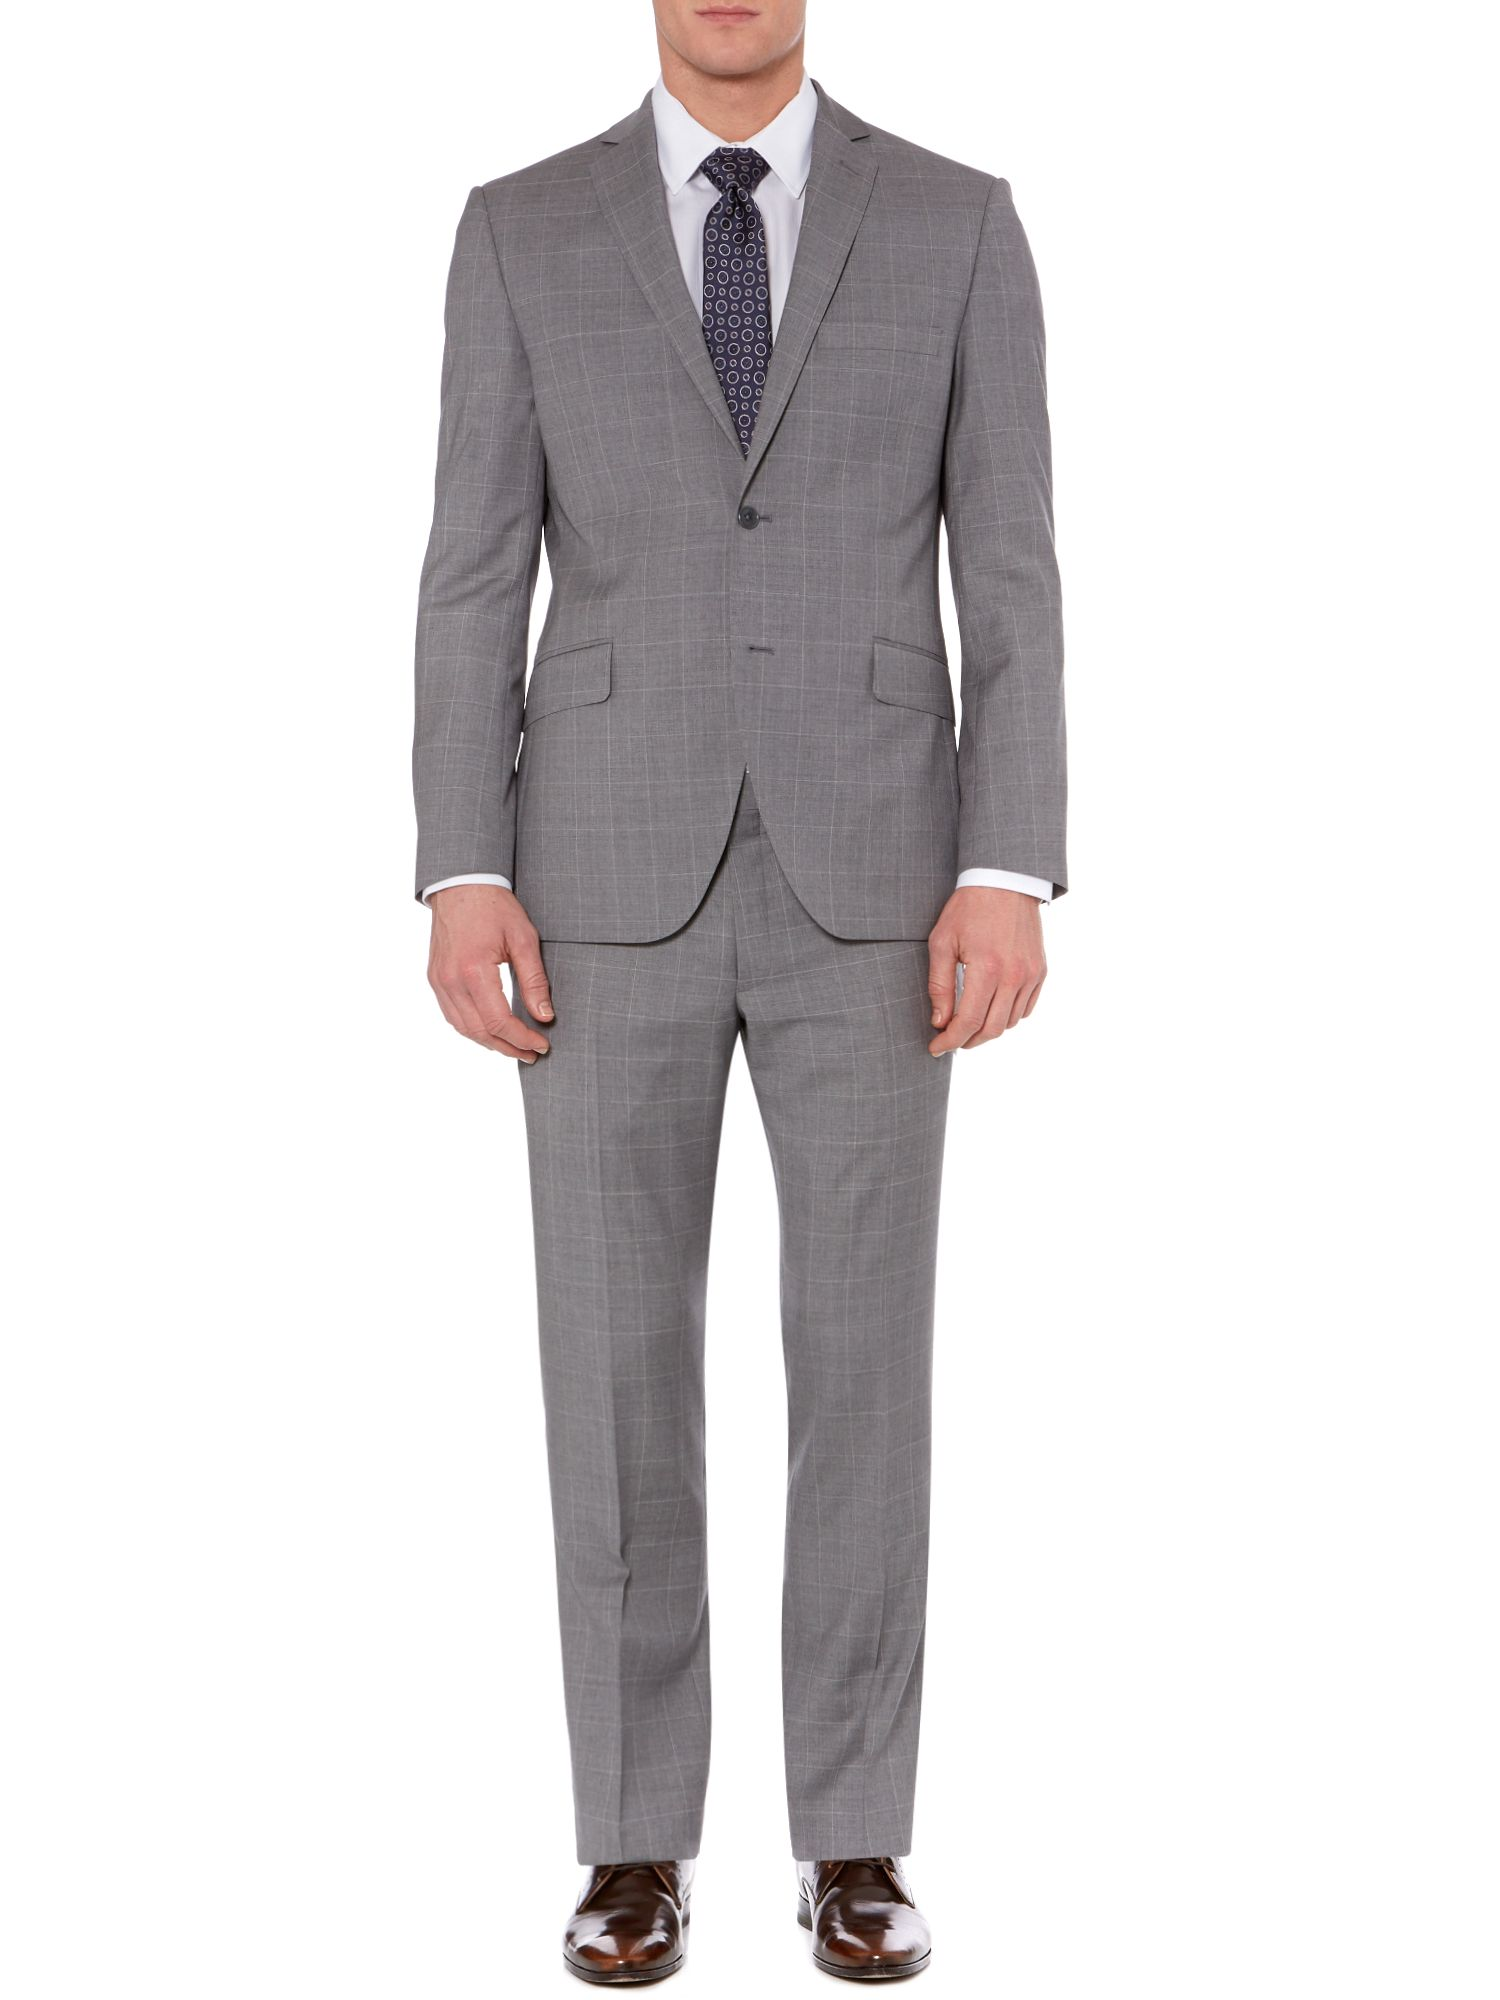 Lambo windowpane check suit